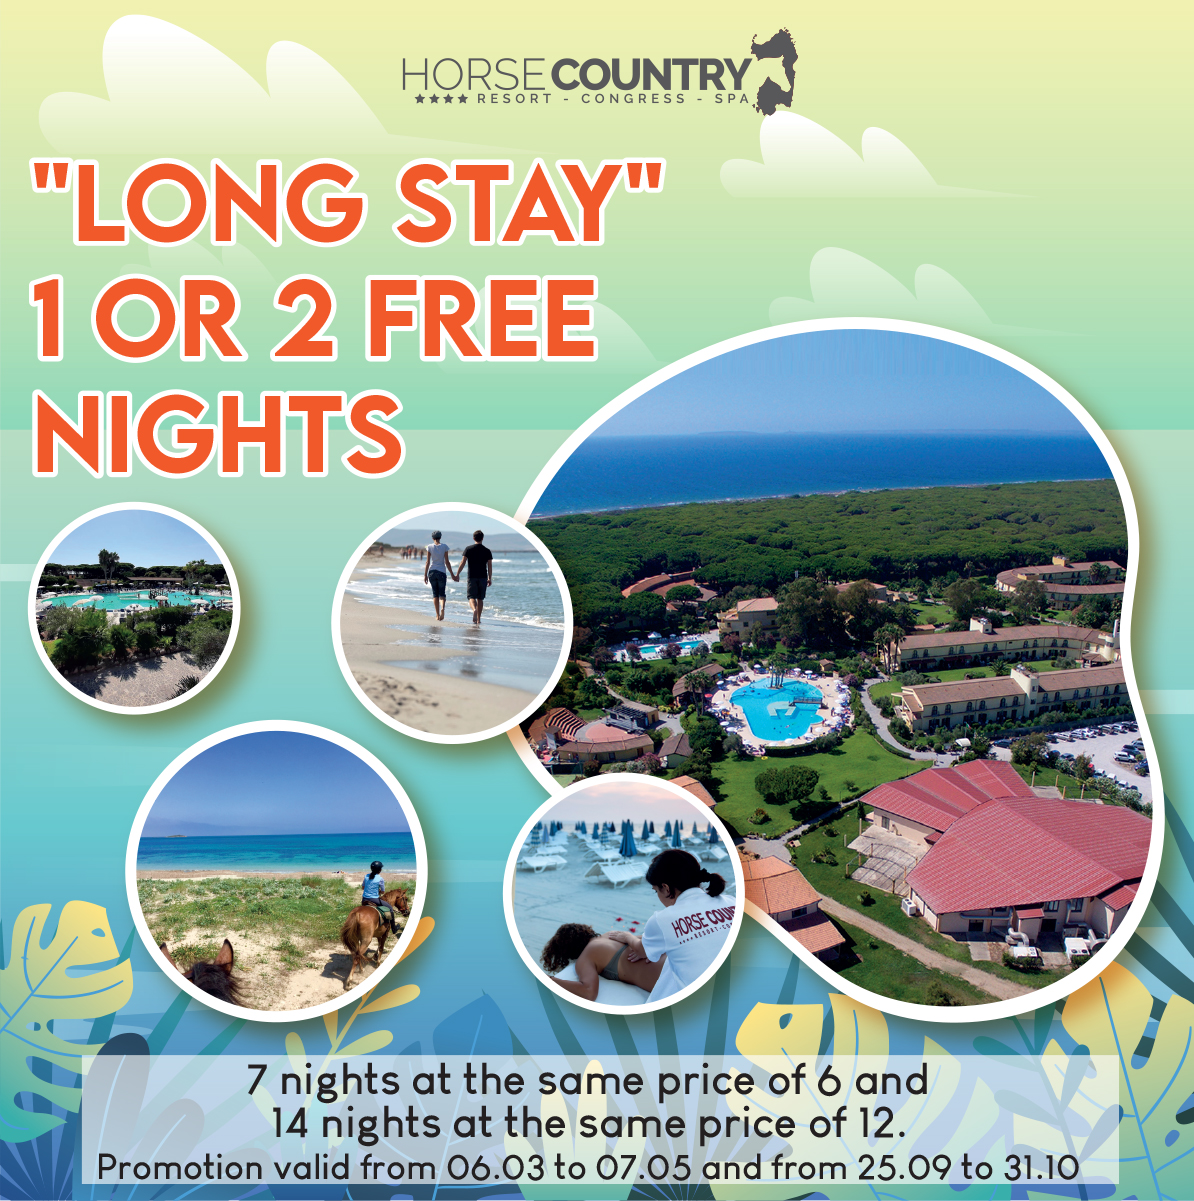 « LONG STAY » 1 OR 2 FREE NIGHT